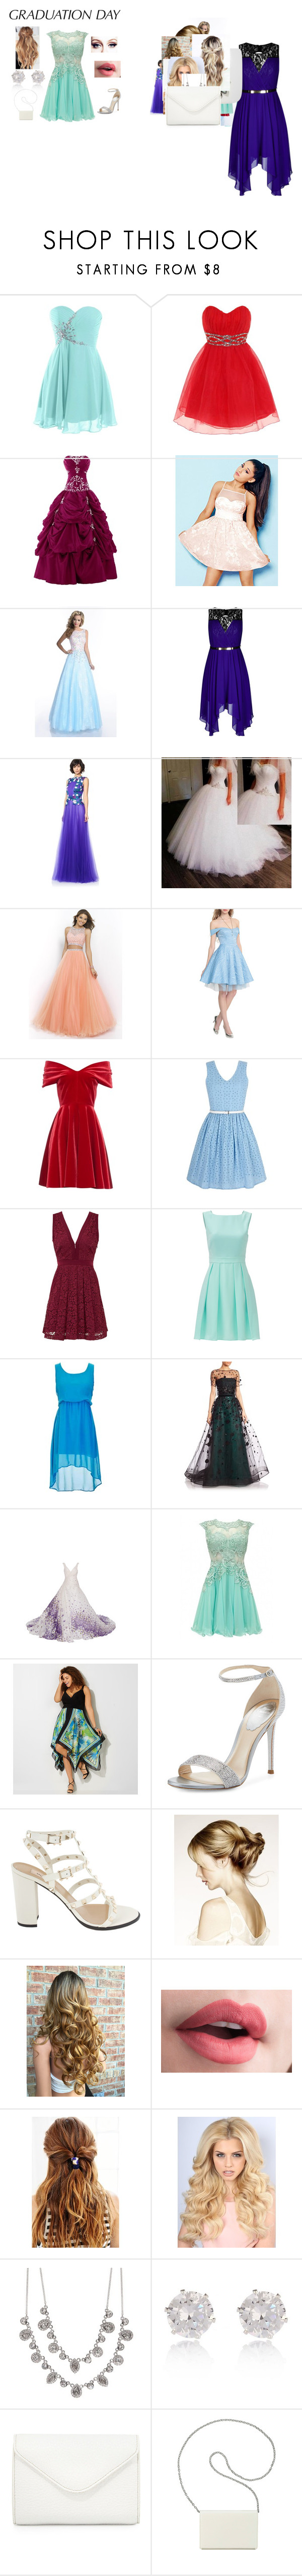 """""""Graudation Day"""" by foreveerneveer on Polyvore featuring Mode, Dorothy Perkins, Lipsy, Envious Couture, City Chic, Disney, Emilio De La Morena, Yumi, Free People und Kate Spade"""